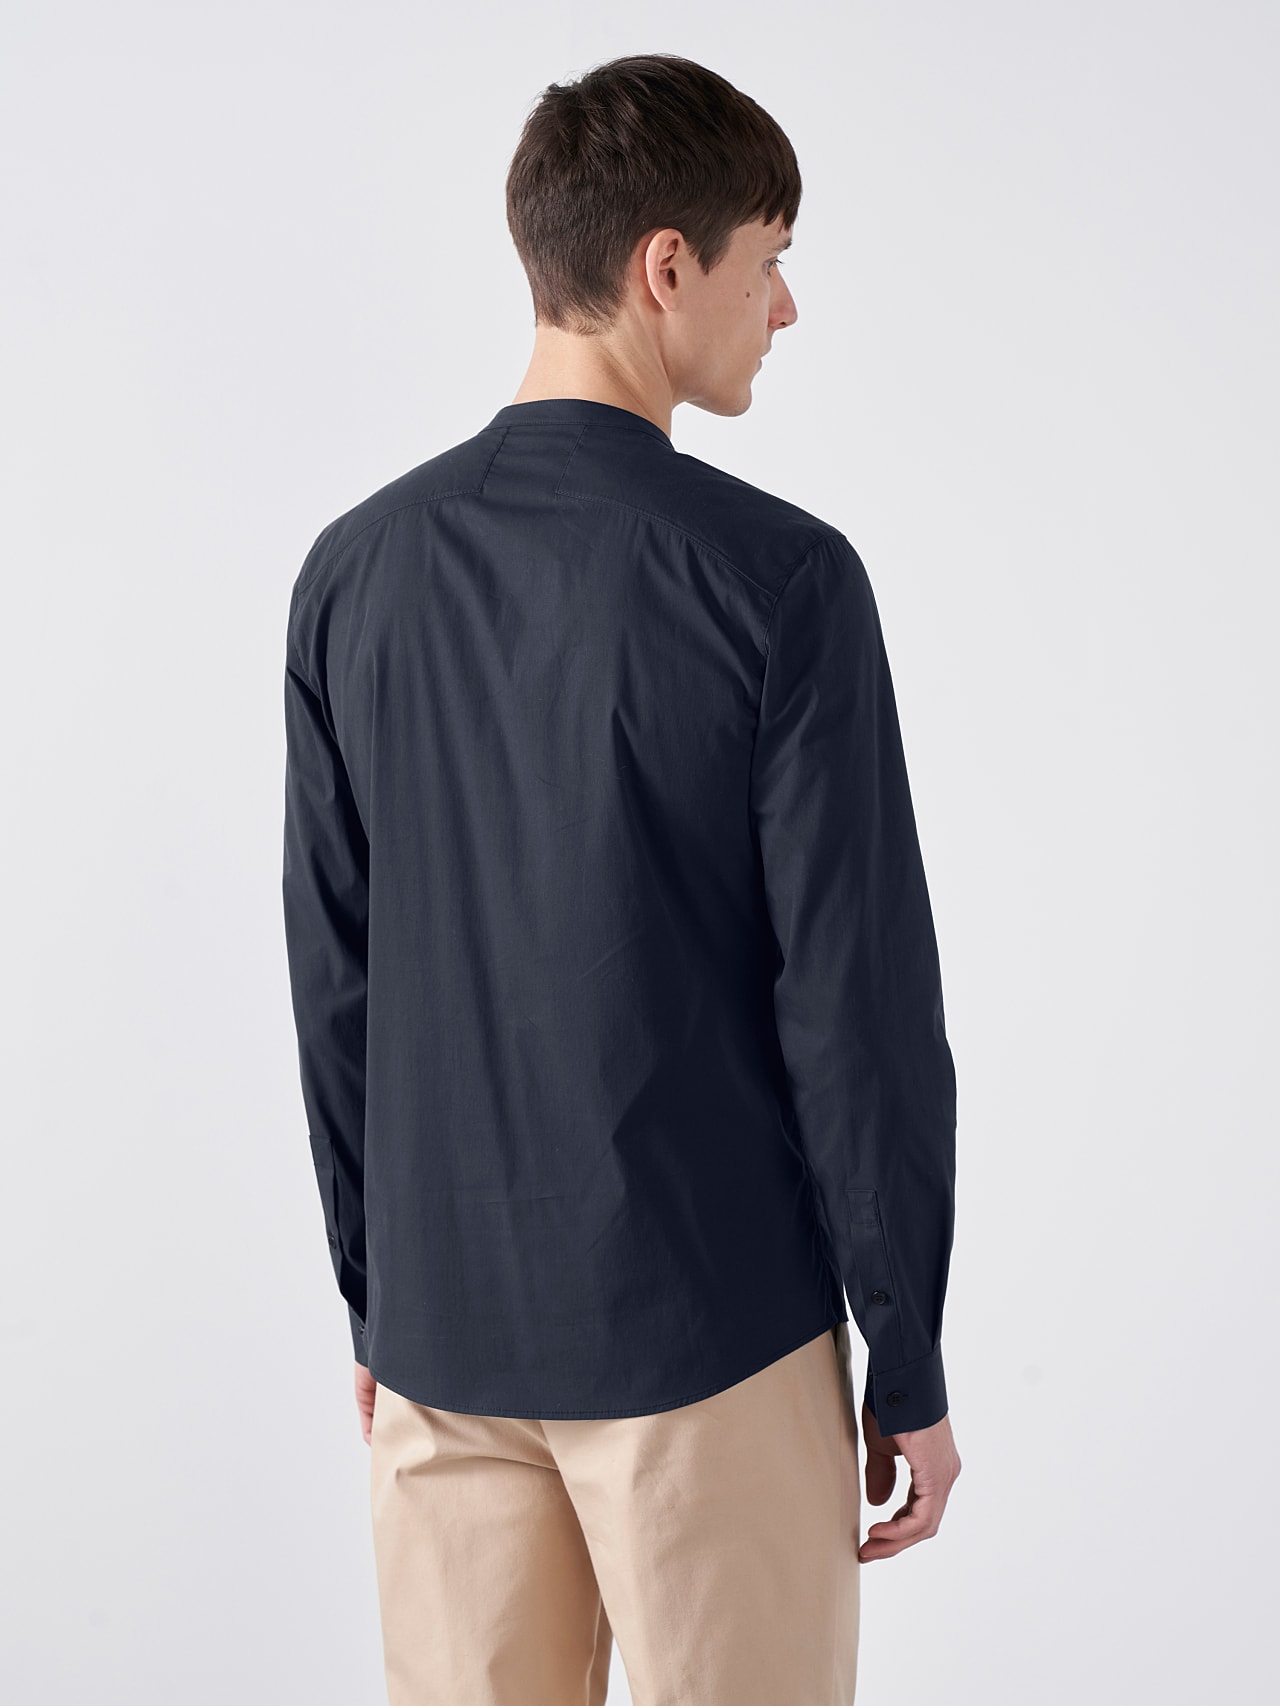 WIDT V9.Y5.01 Stand-Up Collar Cotton-Stretch Shirt navy Front Main Alpha Tauri